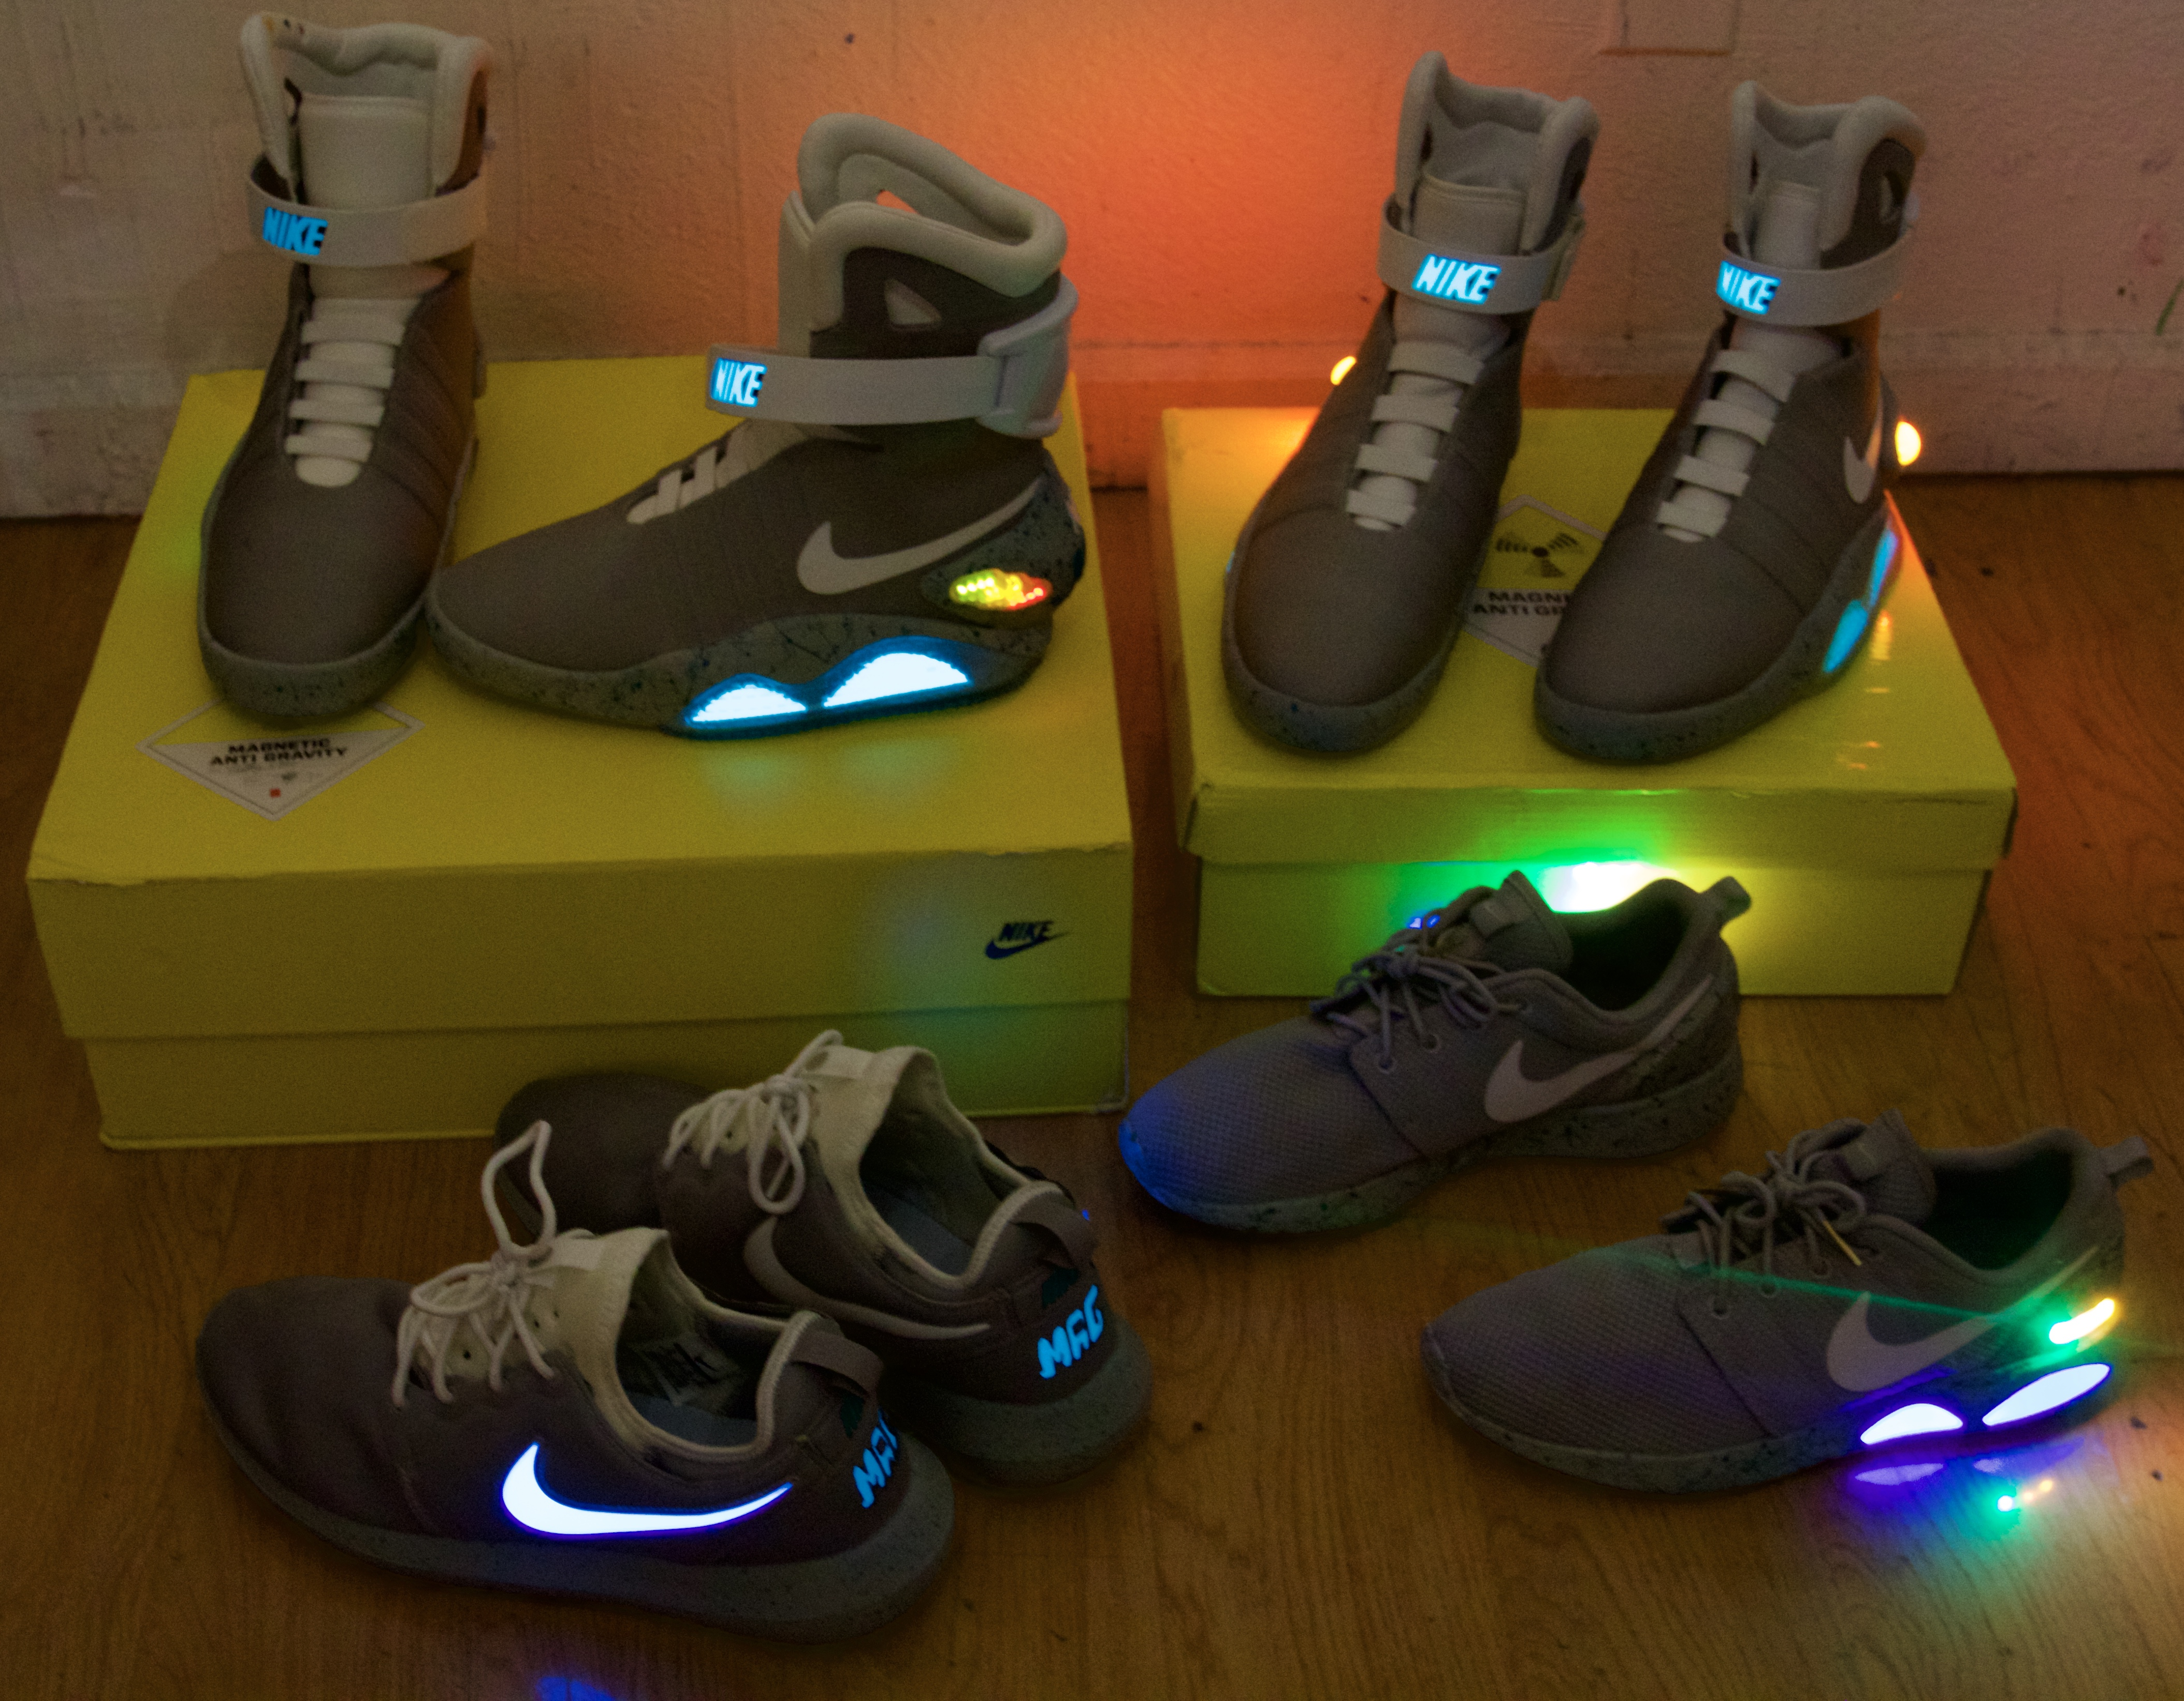 The Nike MAG Collection